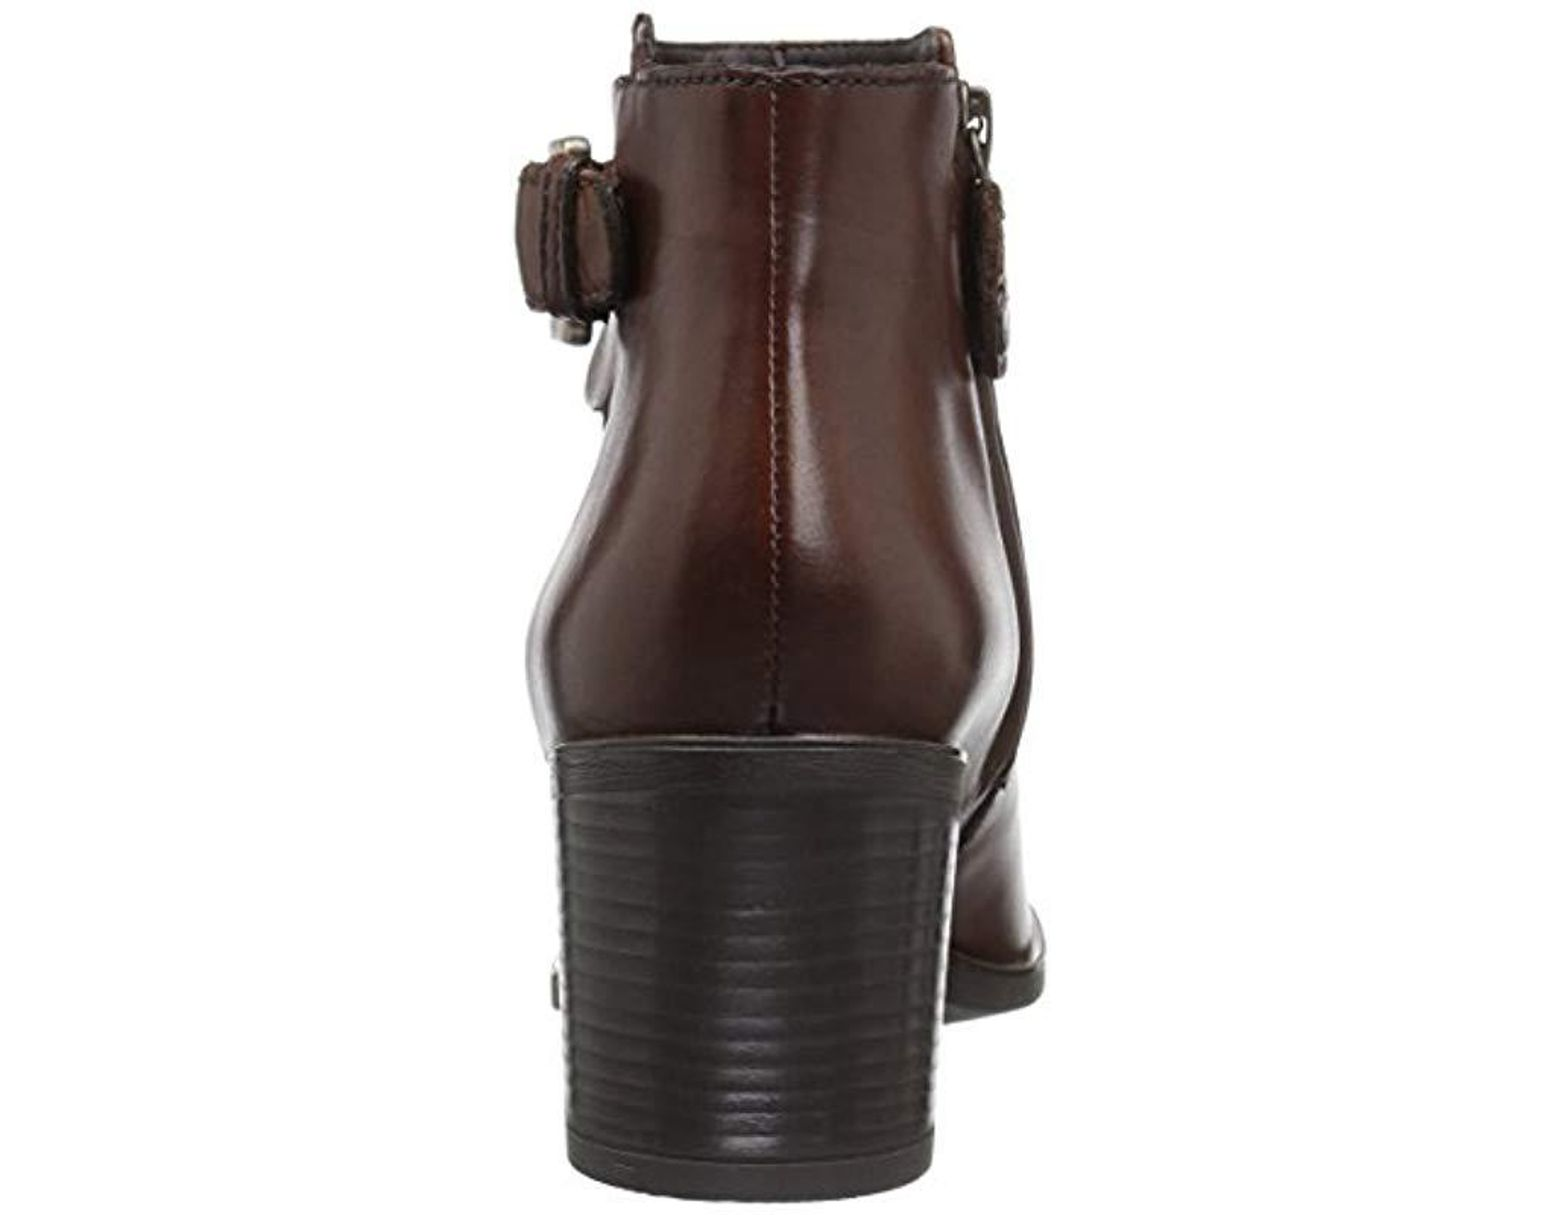 e8b7f47f844 Women's Brown Wglynna1 Ankle Bootie